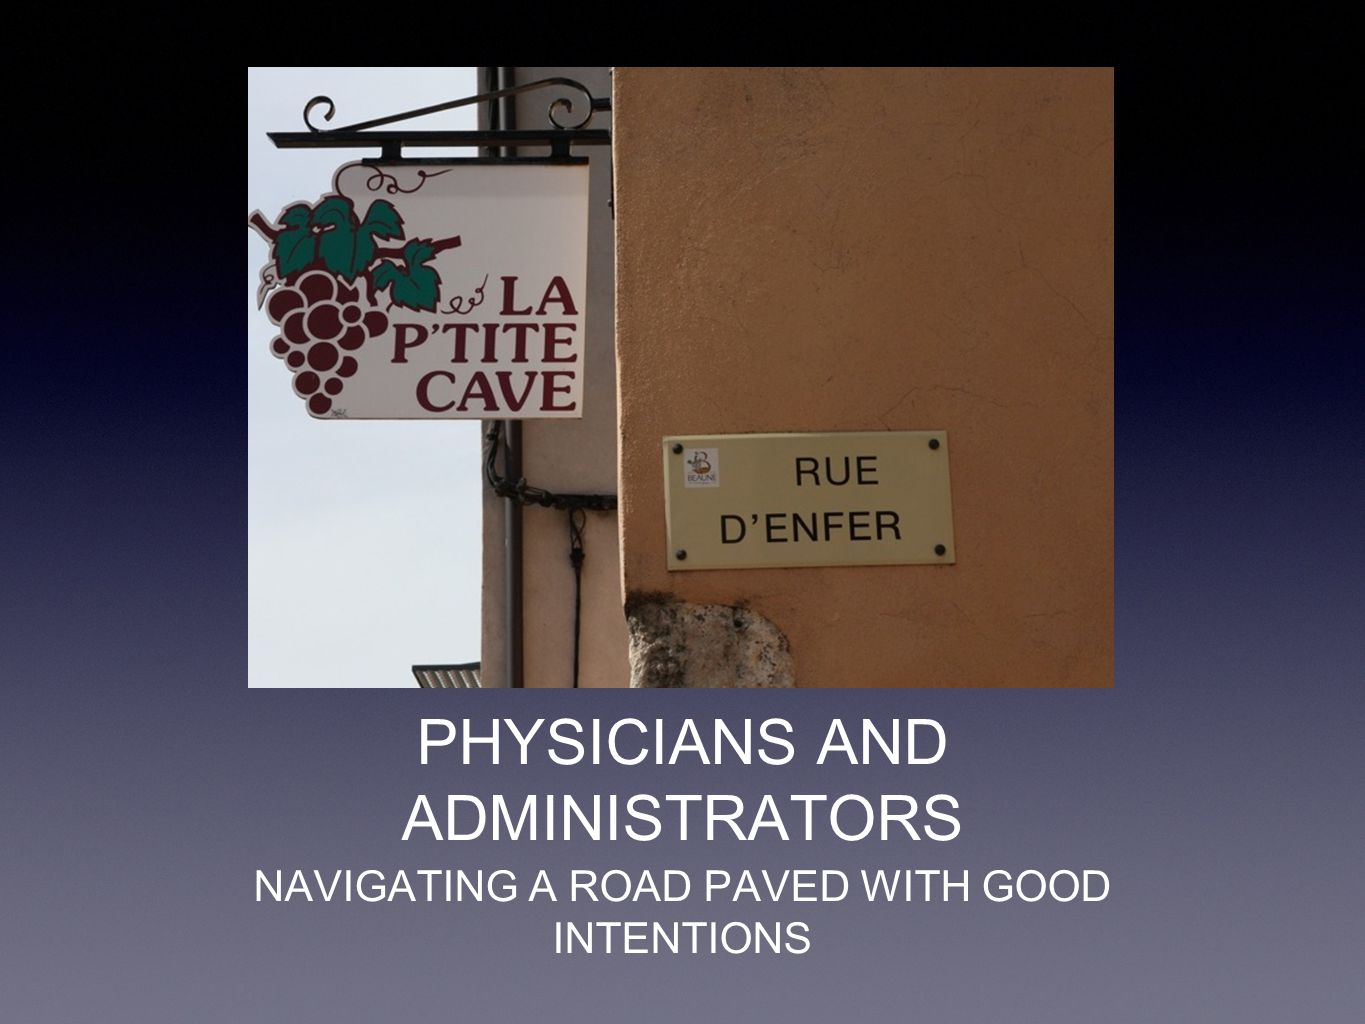 PHYSICIANS AND ADMINISTRATORS No conflicts to declare.